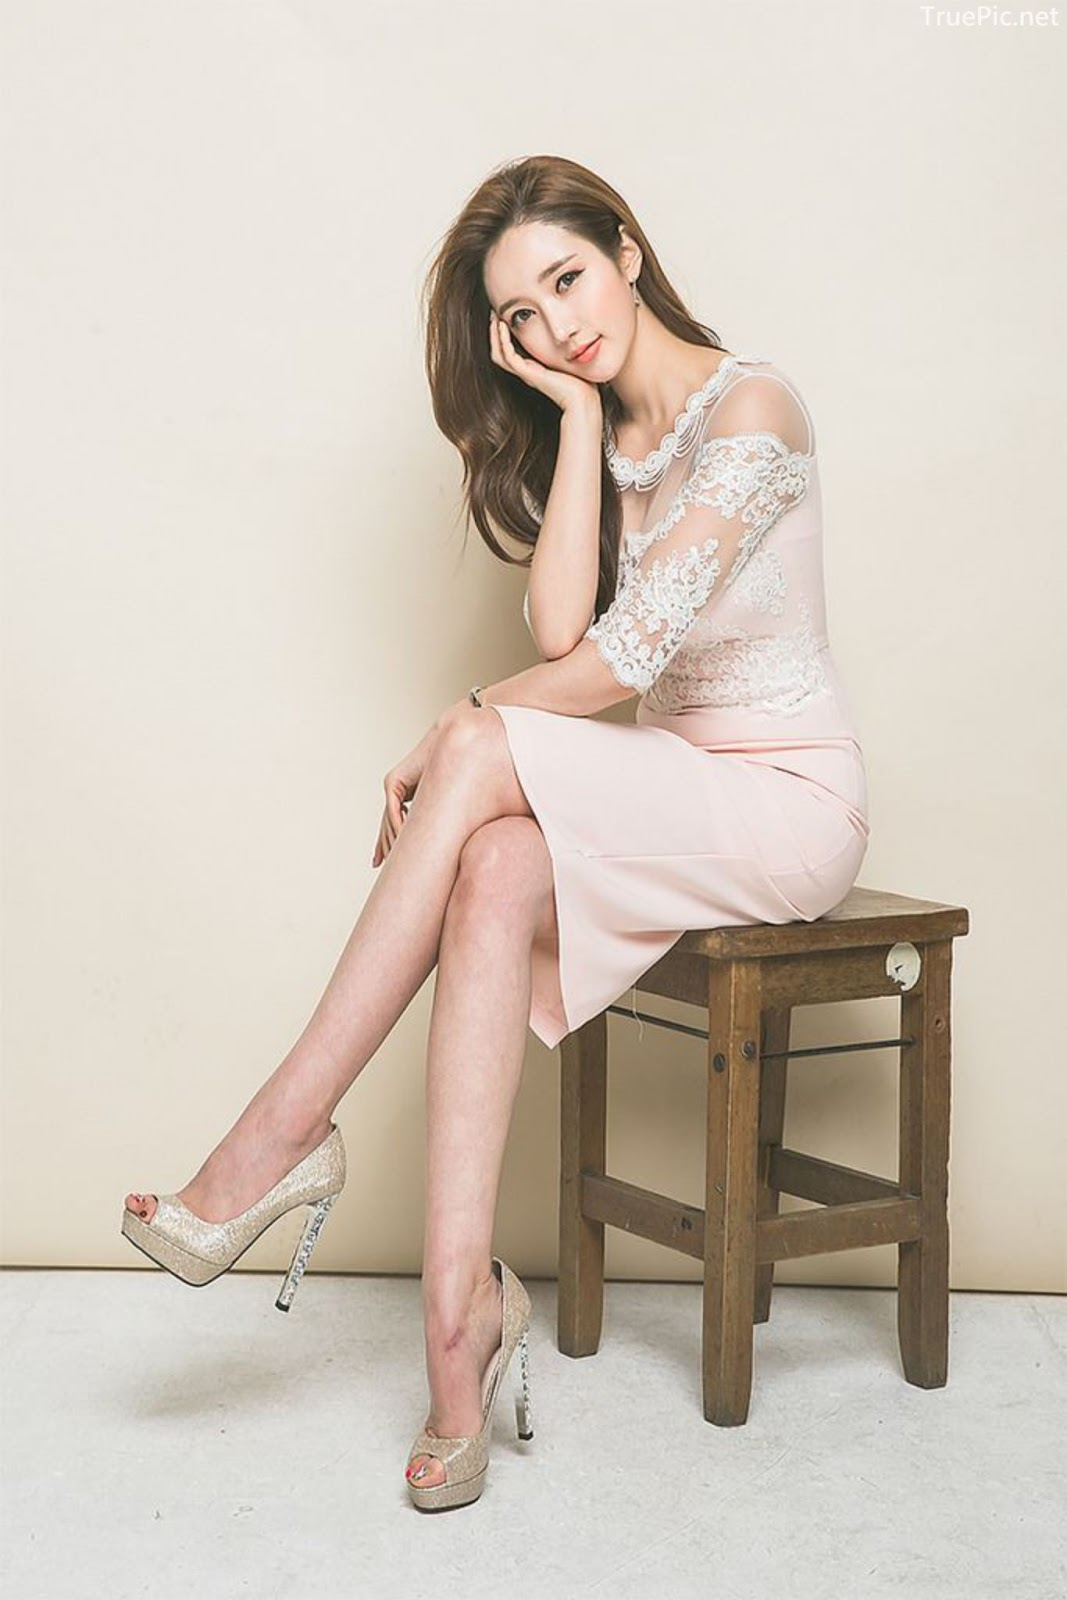 Lee Yeon Jeong - Indoor Photoshoot Collection - Korean fashion model - Part 3 - Picture 5